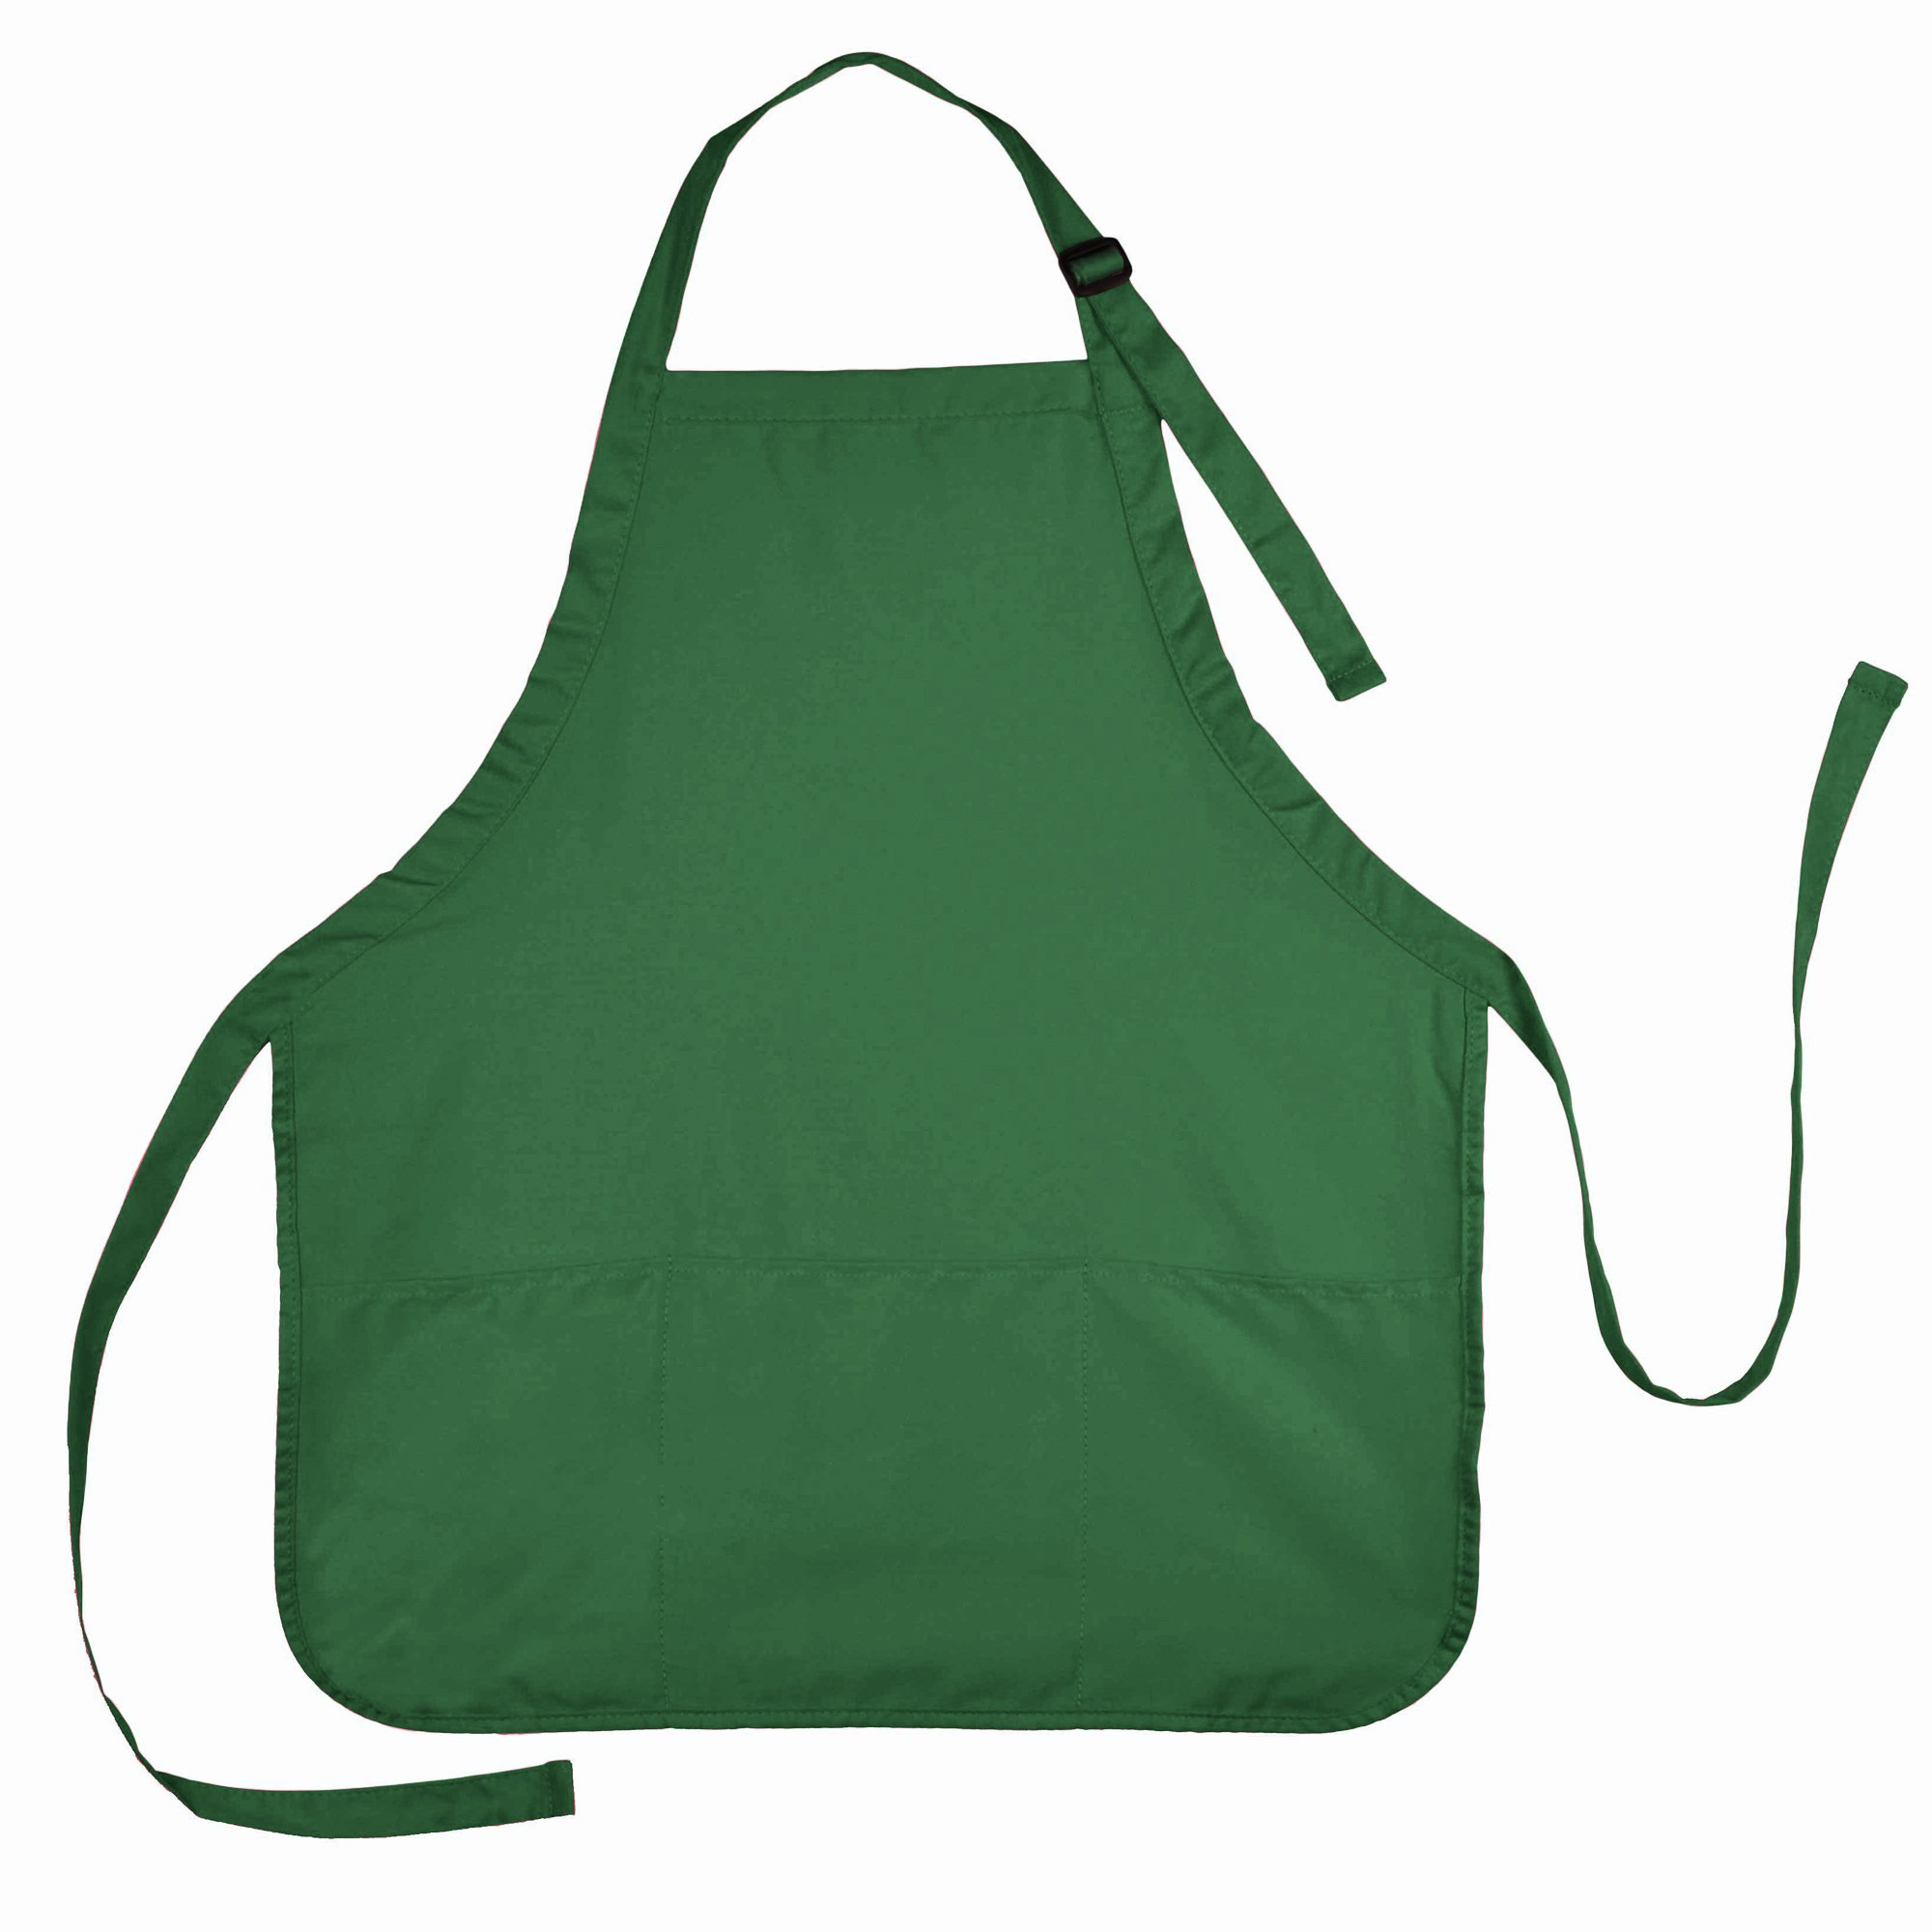 Apron Commercial Restaurant Home Bib Spun Poly Cotton Kitchen Aprons (3 Pockets) in Dark Green 72 PACK